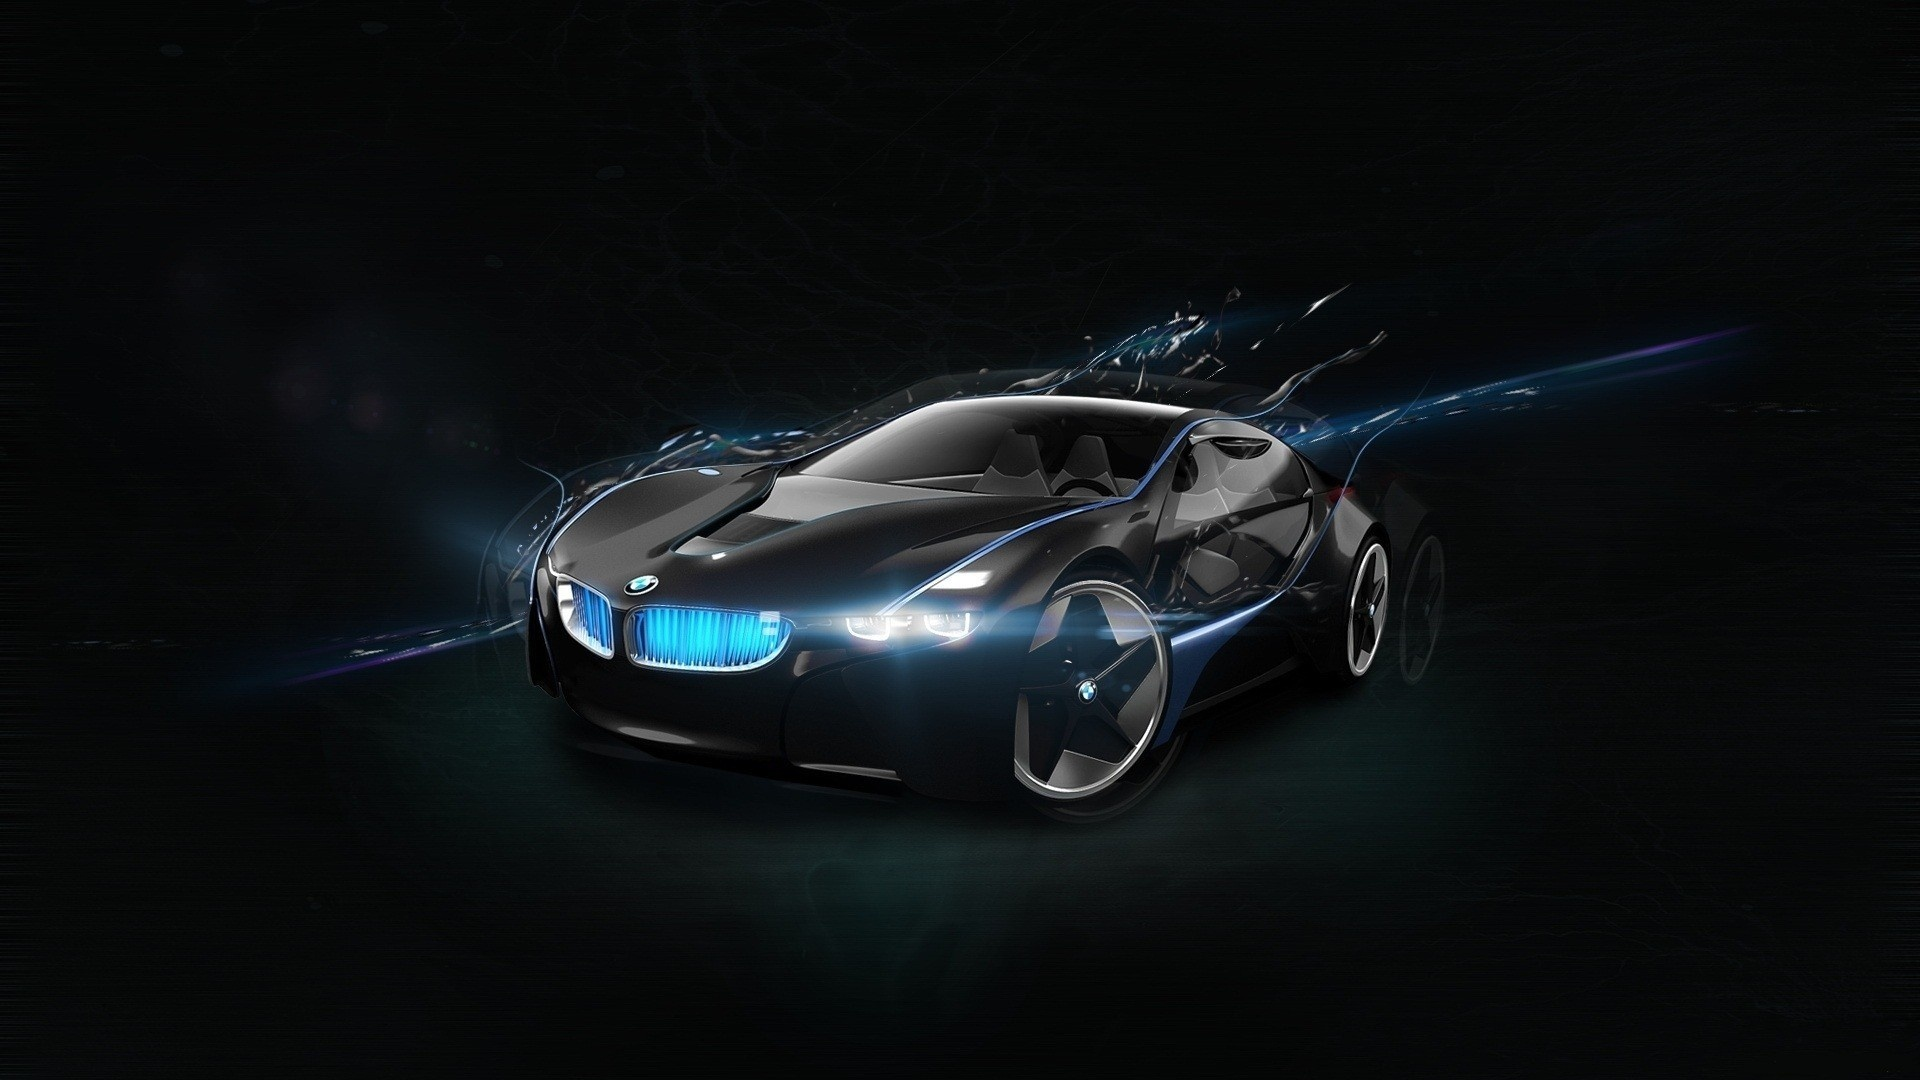 BMW Vision Super Car Wallpapers in jpg format for free ...